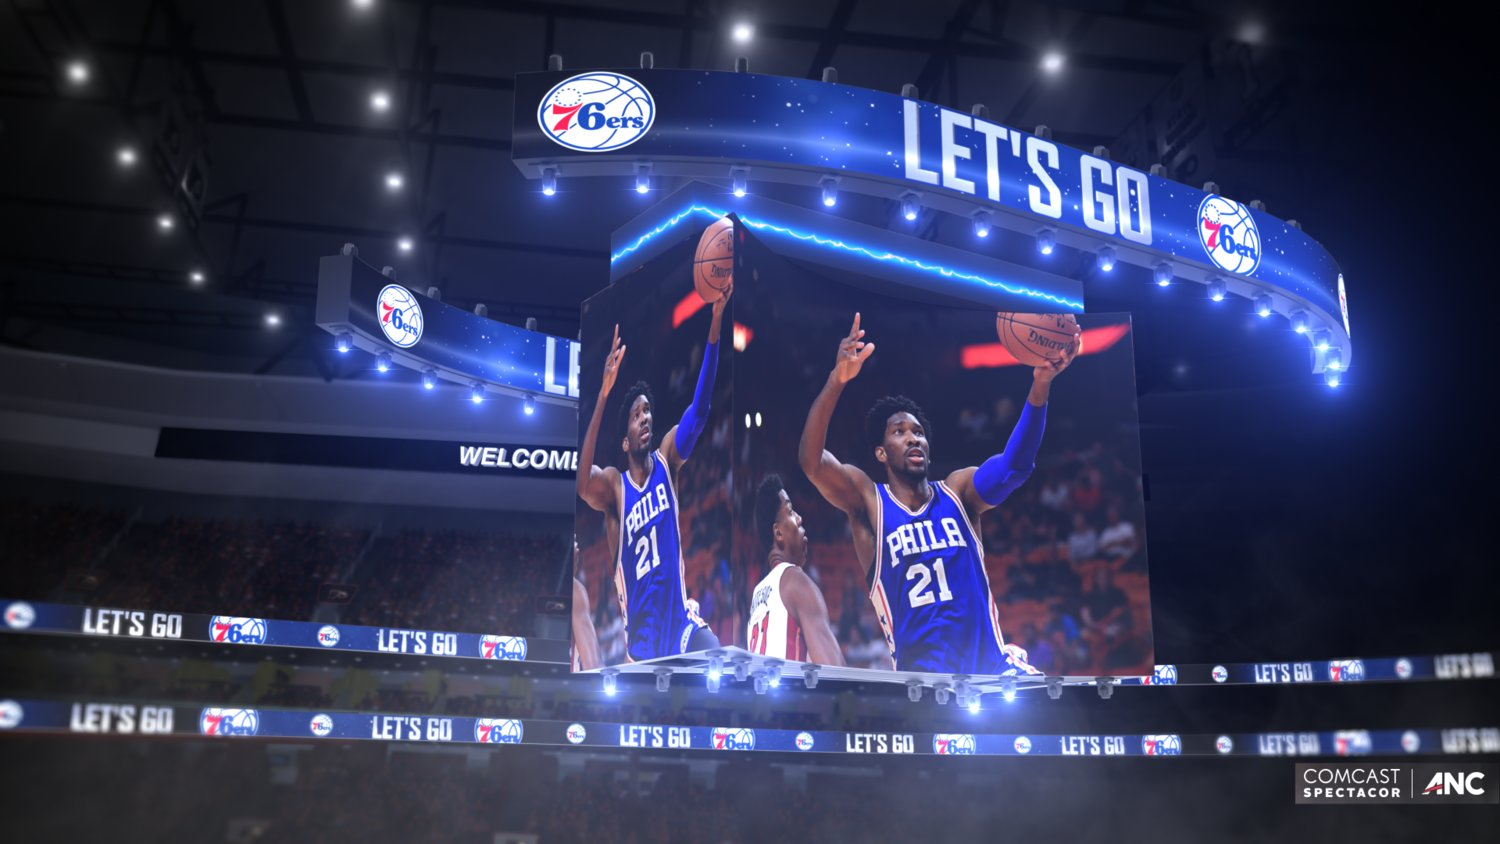 Wells Fargo Center to introduce the world's first kinetic 4K center-hung scoreboard